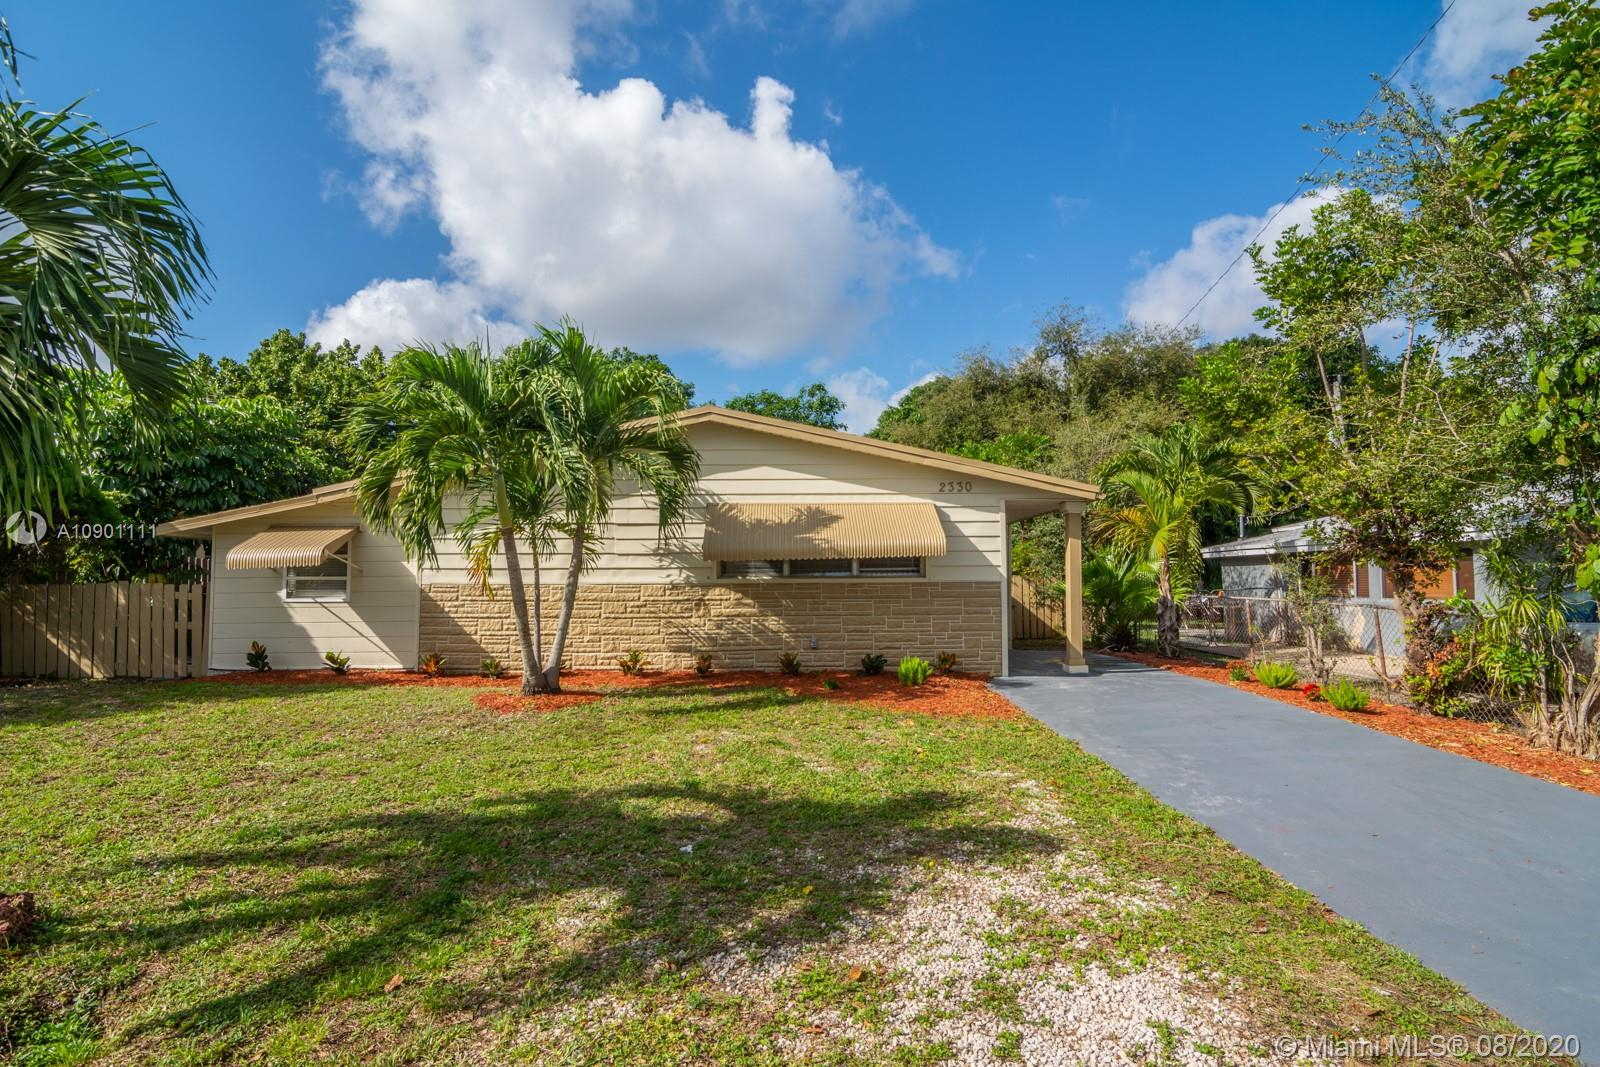 2330 N 61st Ave  For Sale A10901111, FL